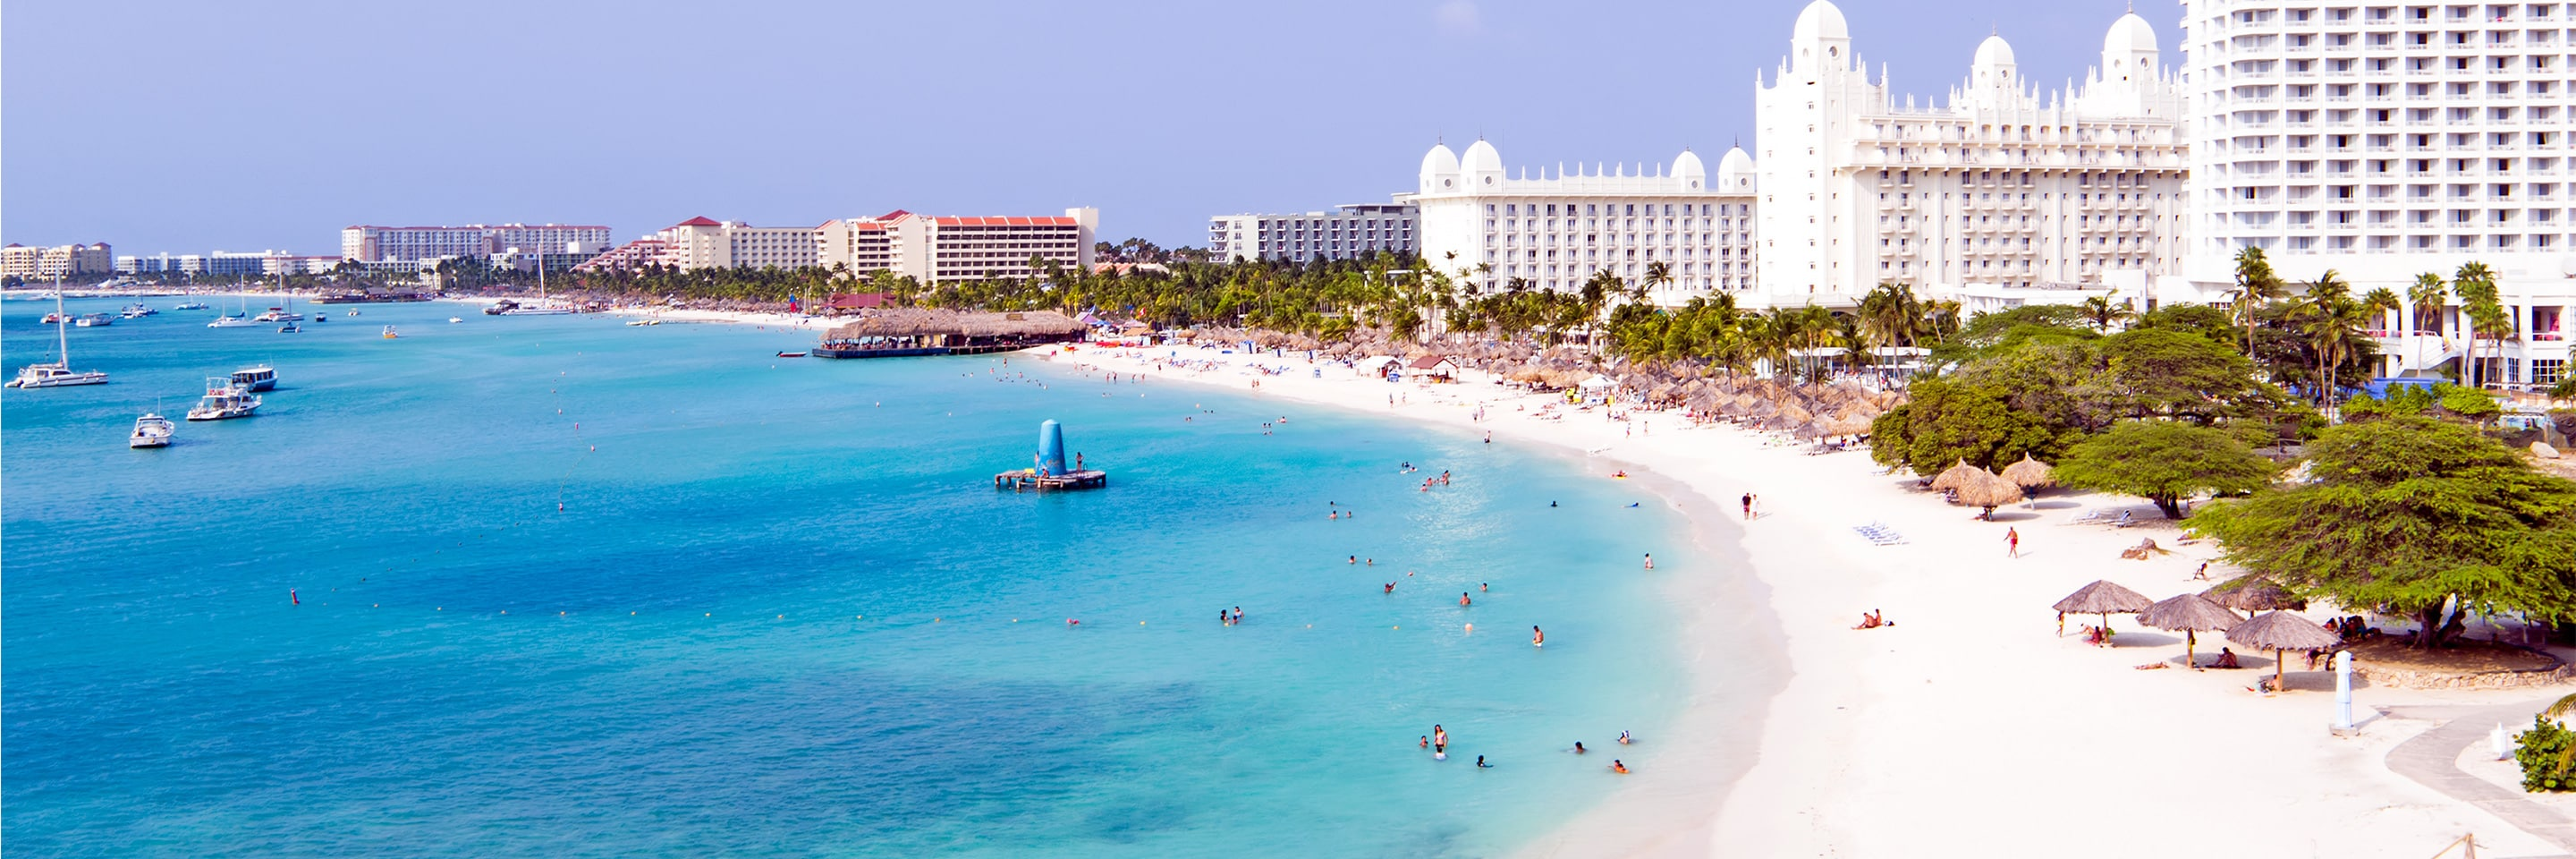 Top Hotels in Aruba | Marriott Aruba Hotels on map of riu aruba, map of hotels on eagle beach aruba, map of aruba timeshares, map of aruba high-rise, map of palm beach in aruba the caribbean,